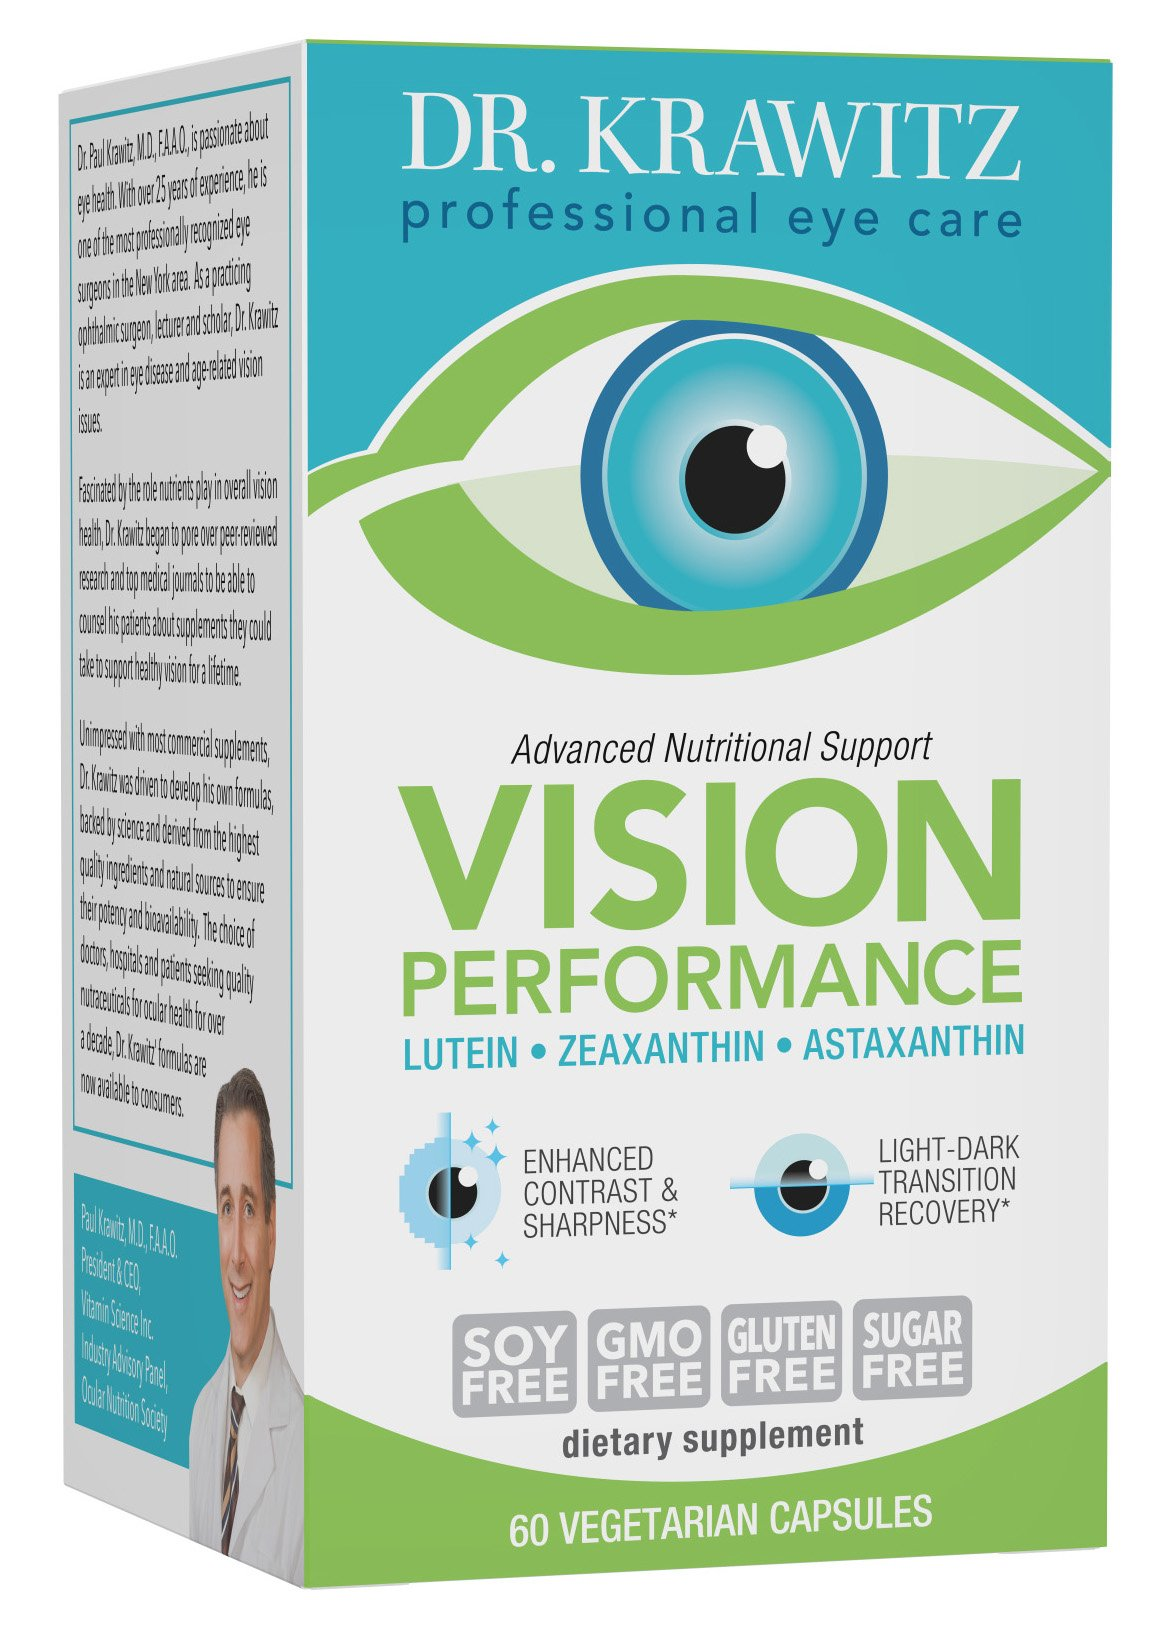 Dr. Krawitz Vision Performance with Lutein, Zeaxanthin & Astaxanthin - 60 caps by Dr. Krawitz Professional Eye Care Supplements (Image #1)